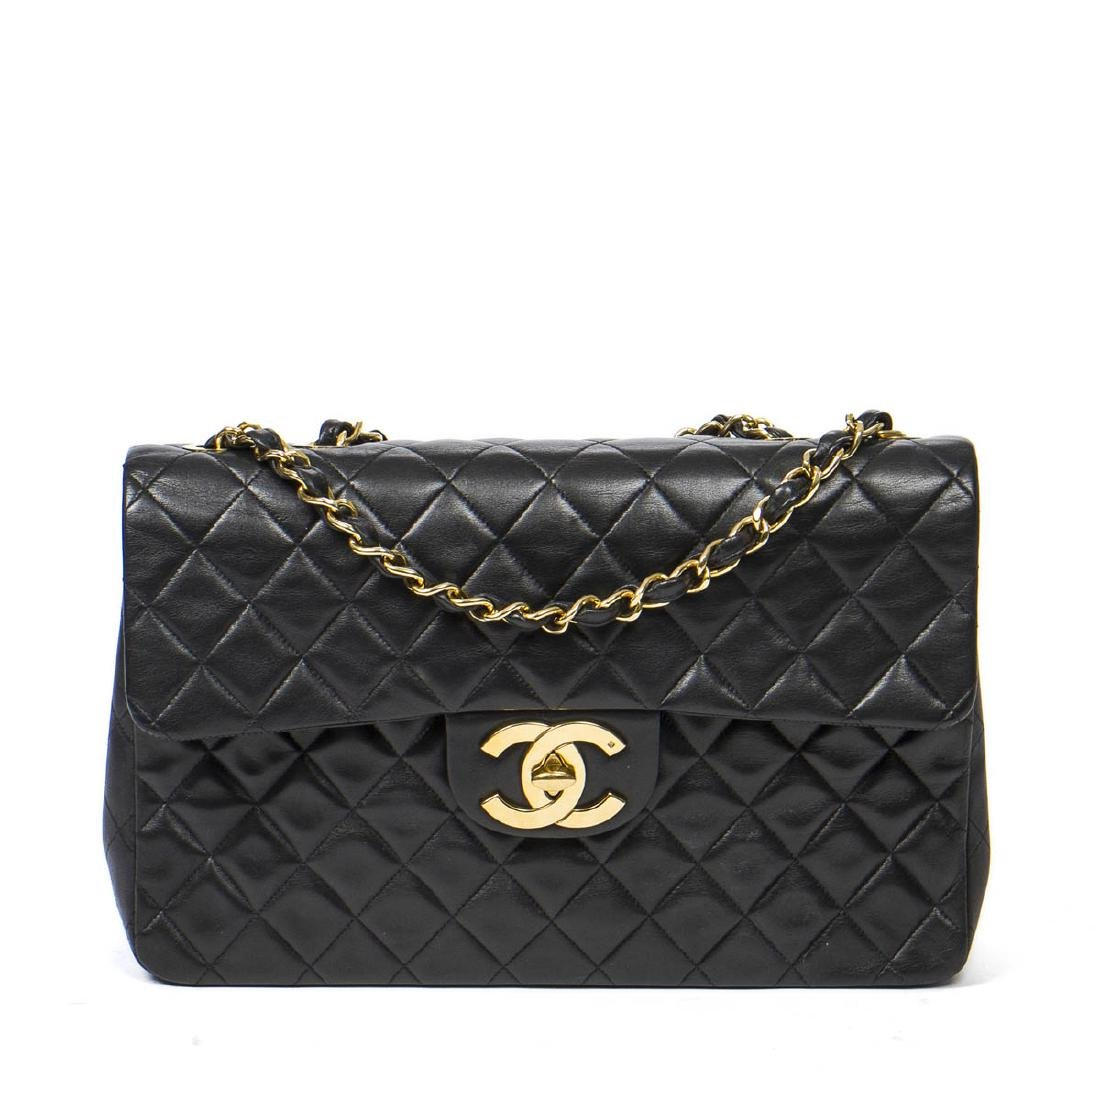 Chanel Maxi Jumbo in Black Quilted Leather